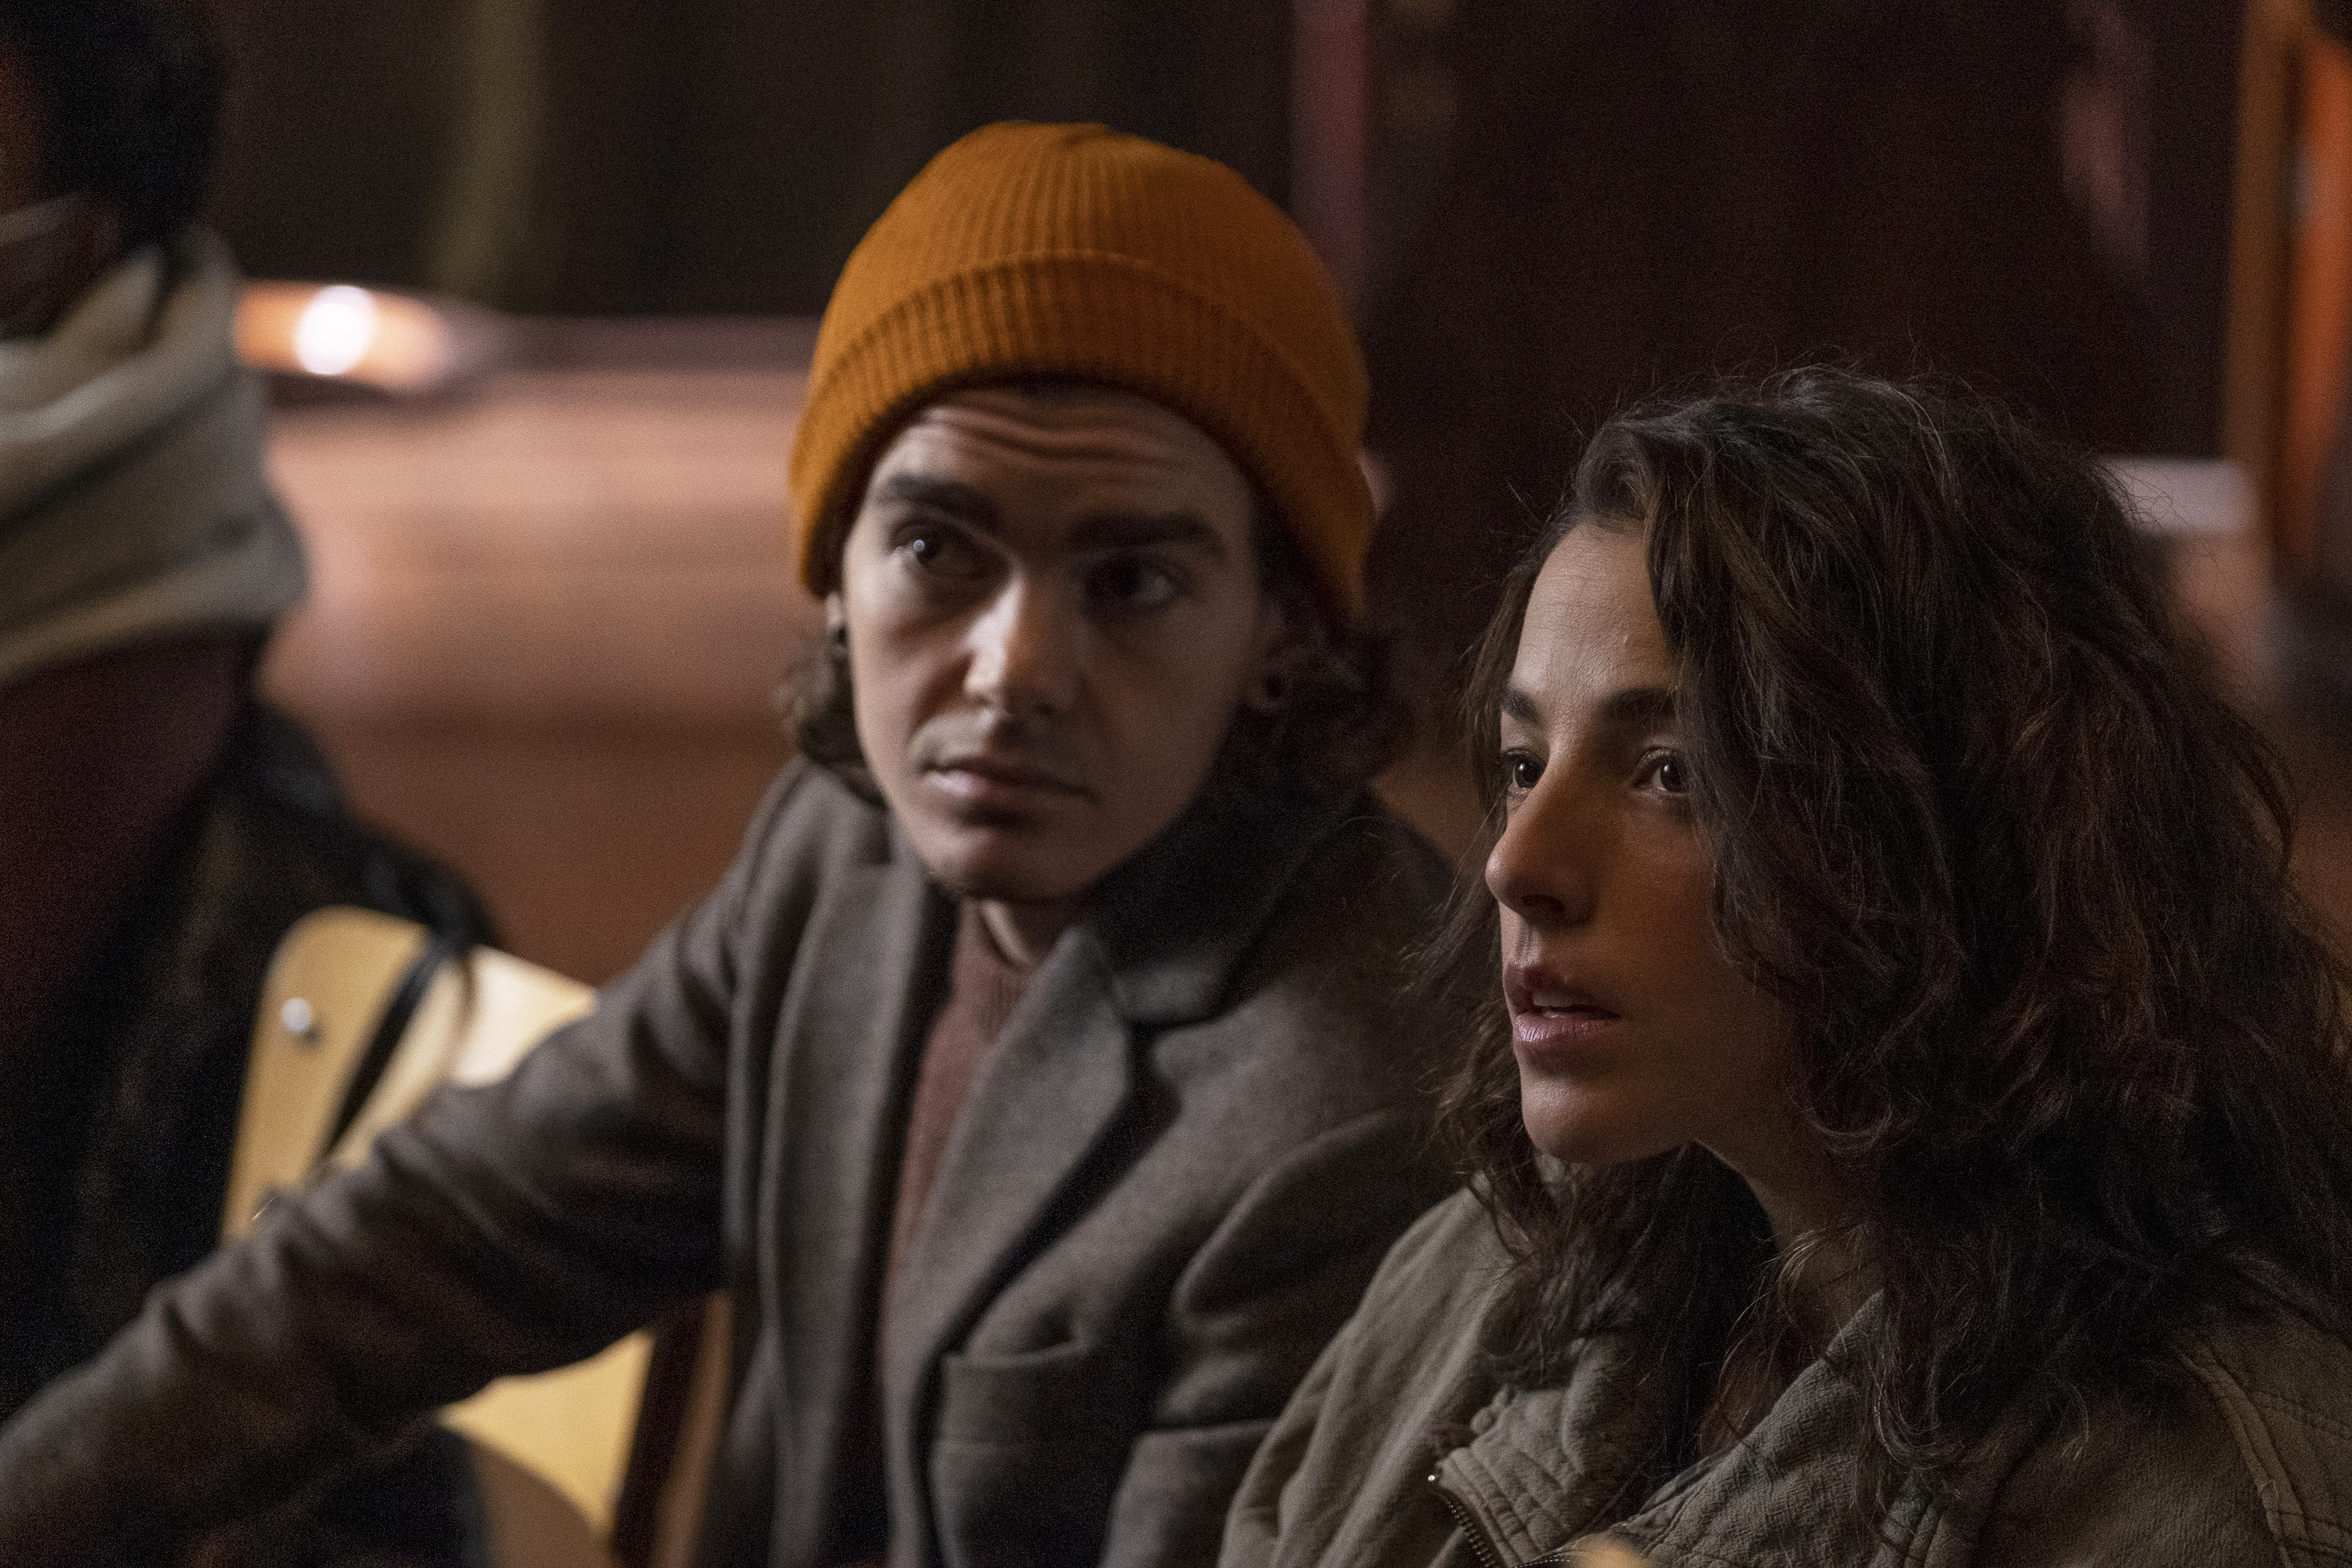 Elliot Fletcher and Olivia Thirlby in 'Y: The Last Man'